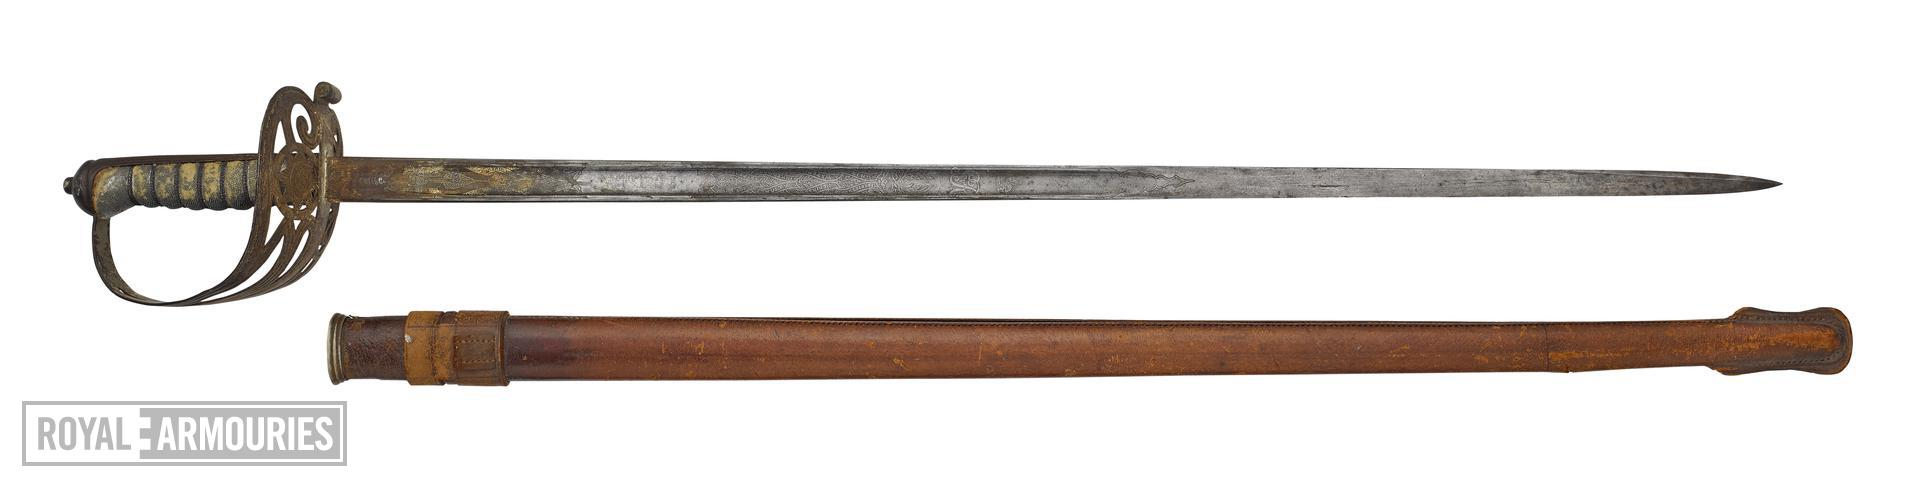 Coldstream Guards 1892 Officer's Sword